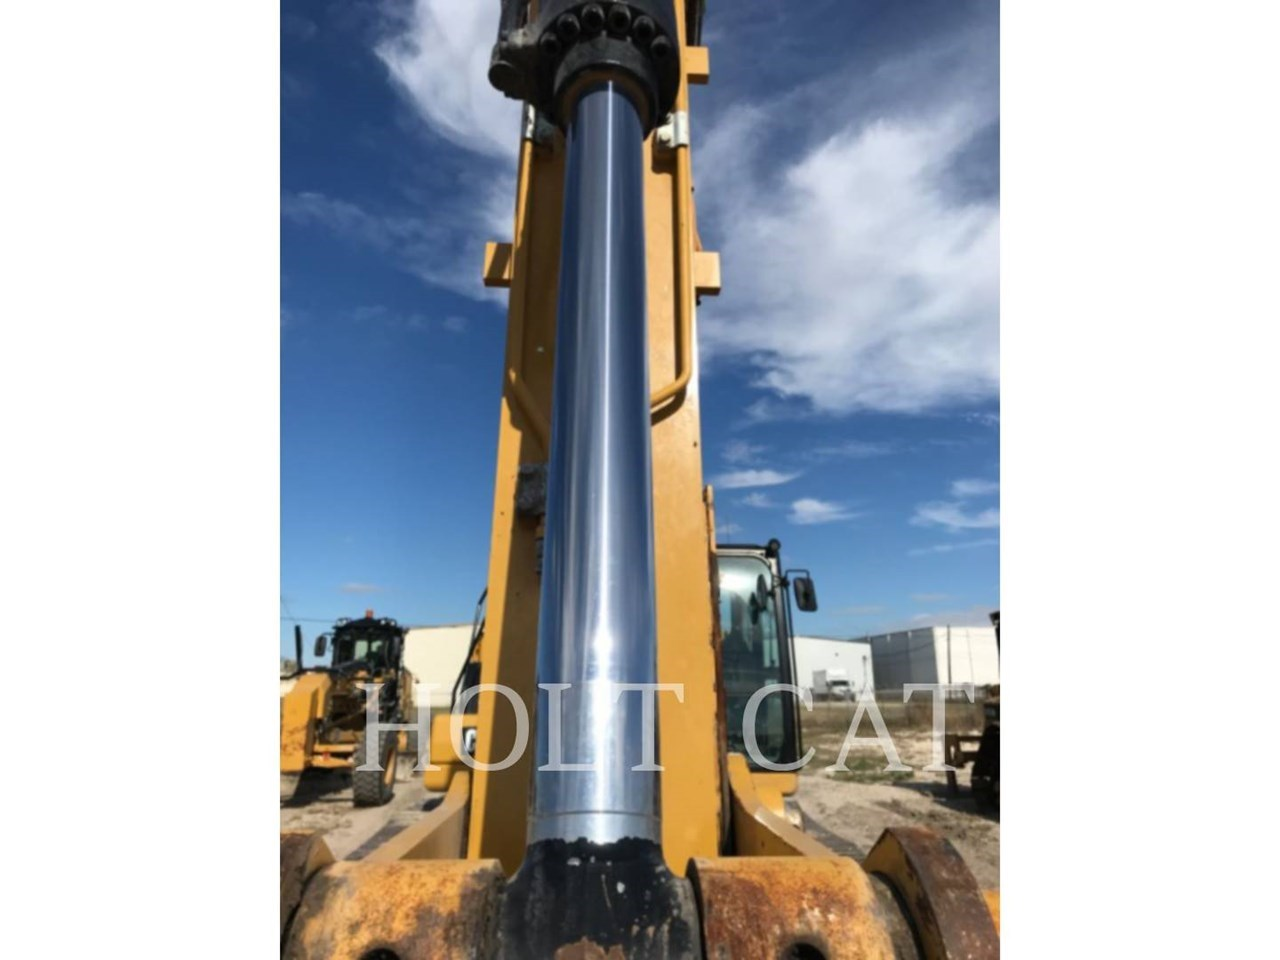 2019 Caterpillar 320 Image 9